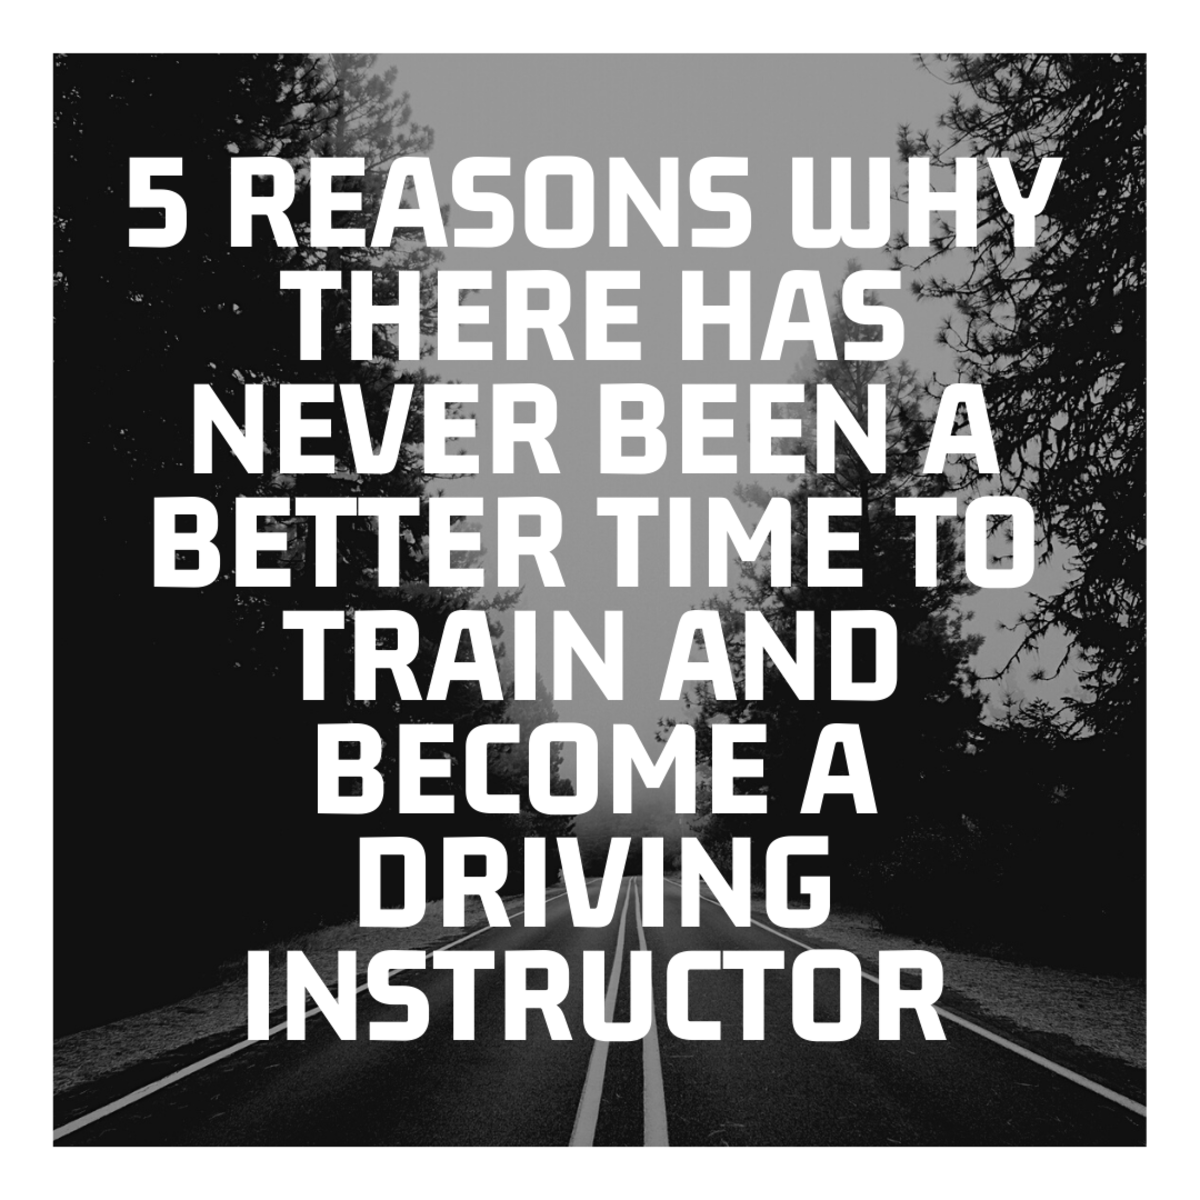 5 Reasons Why There Has Never Been a Better Time to Train and Become a Driving Instructor